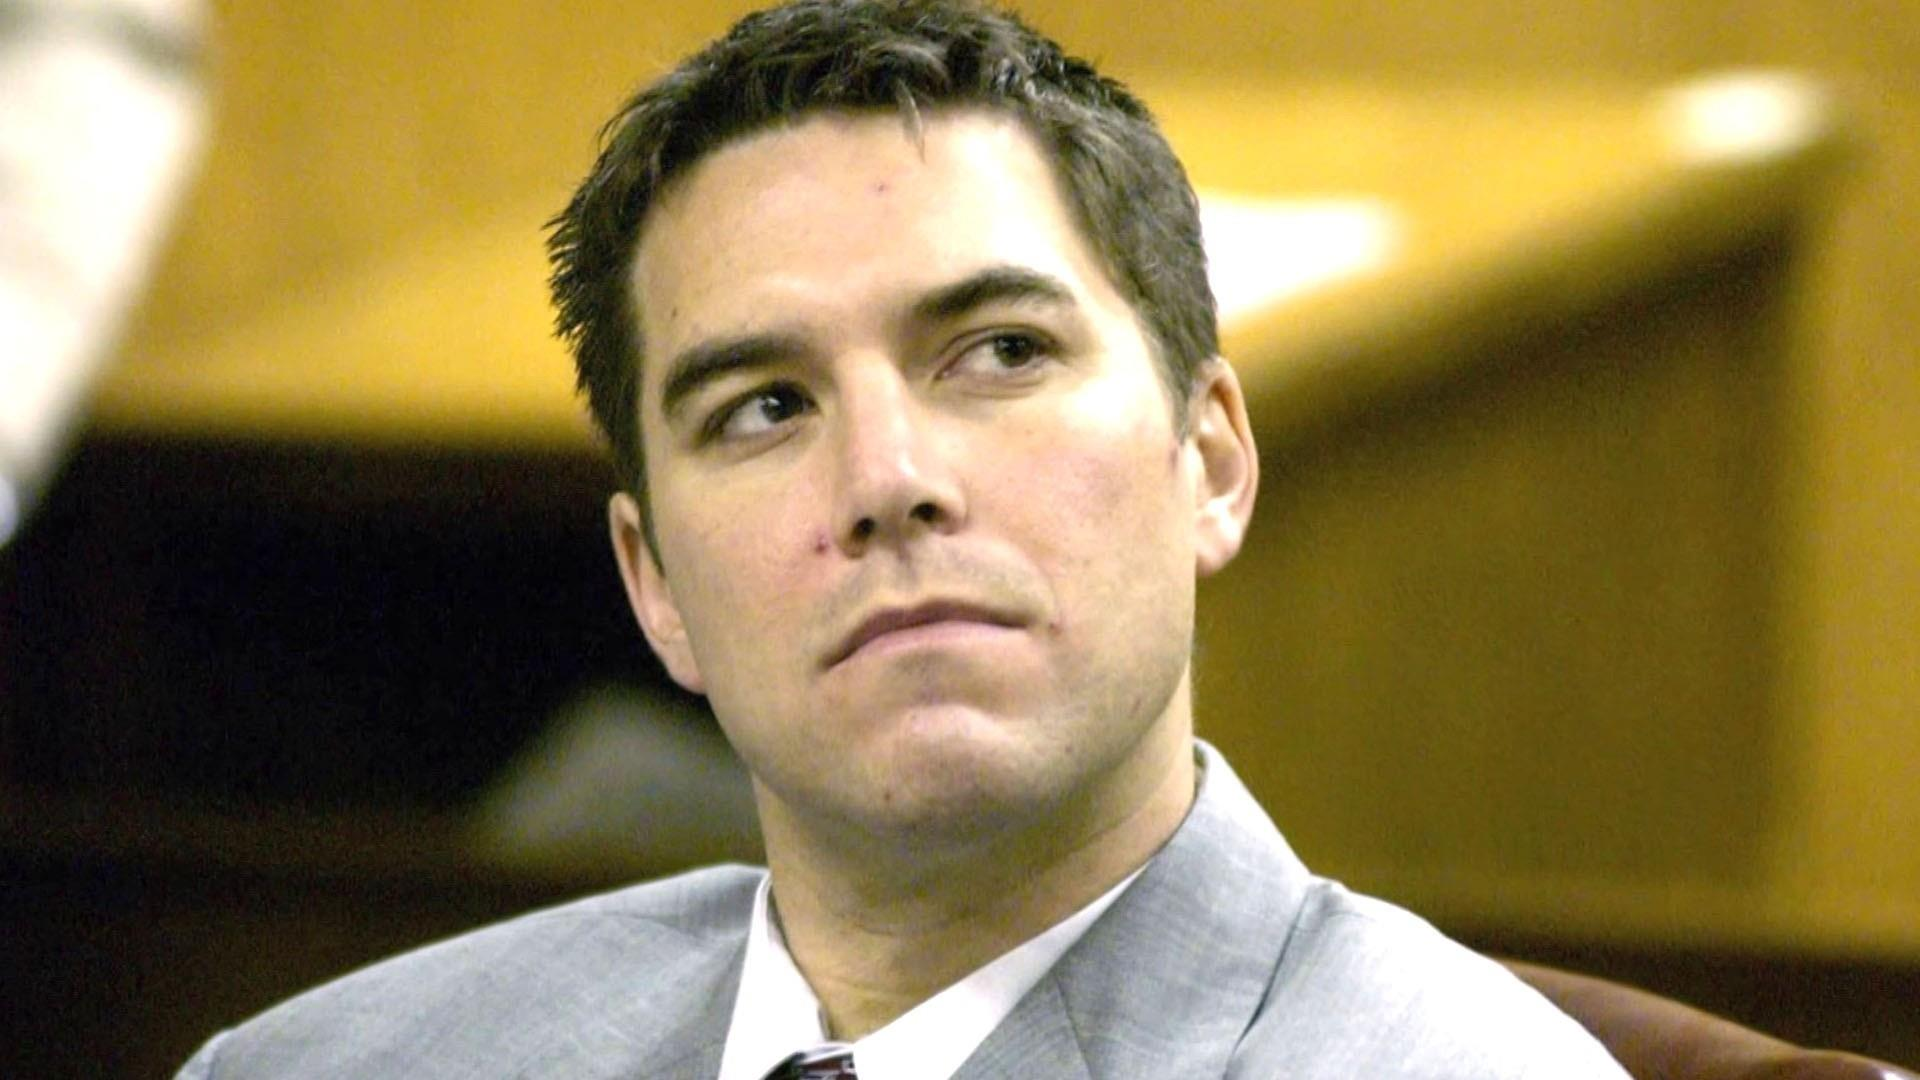 news.yahoo.com: Scott Peterson appears in court seeking retrial in murders of his wife and unborn son